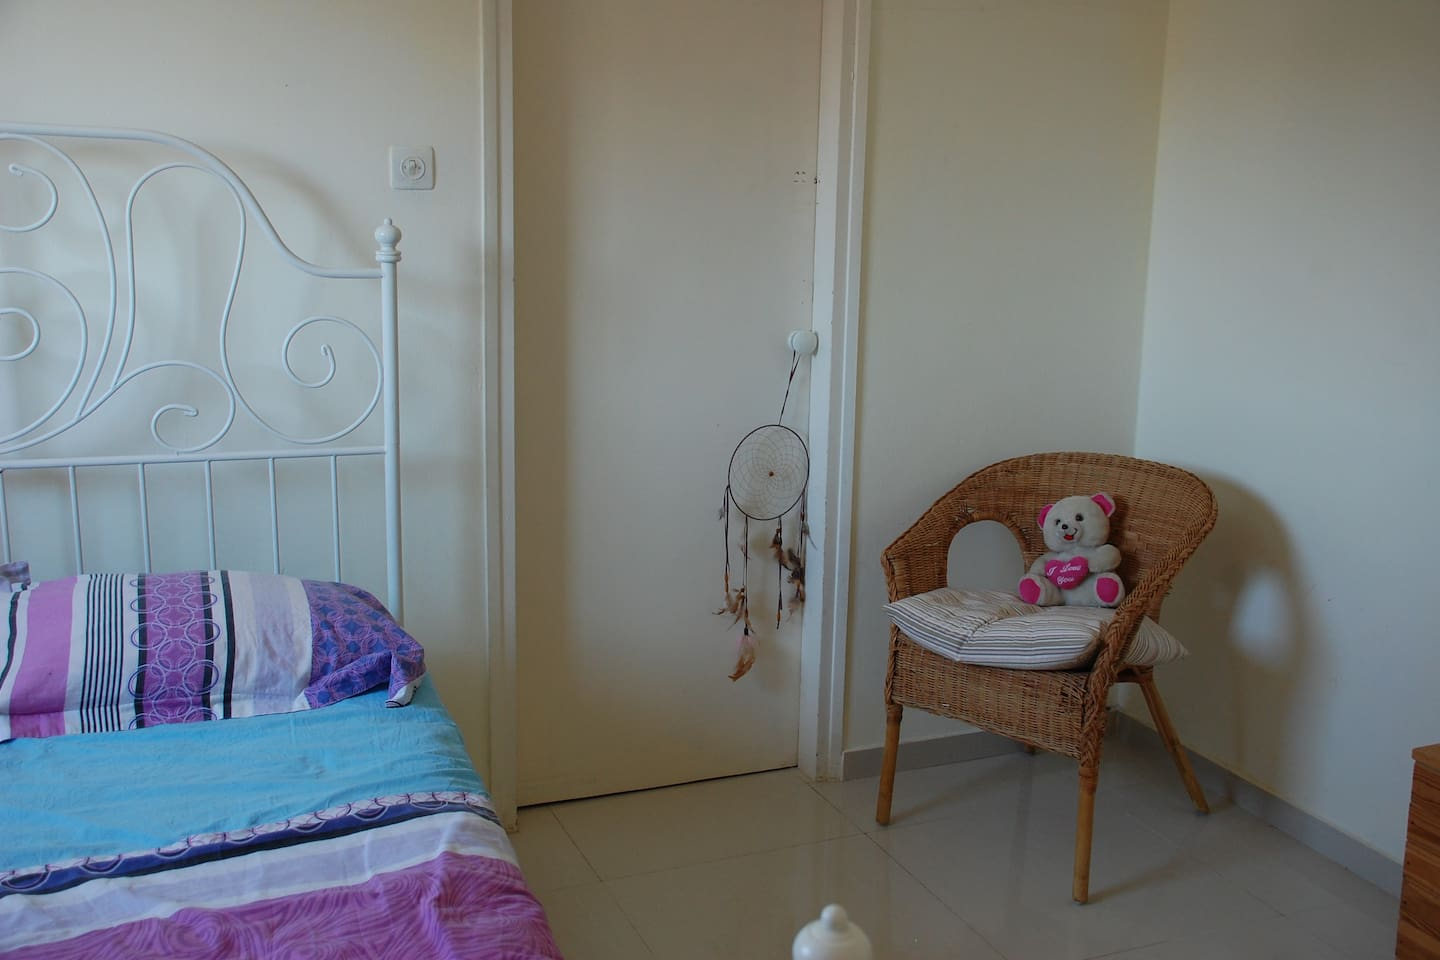 Beutiful home in the center of Rishon LeZyion